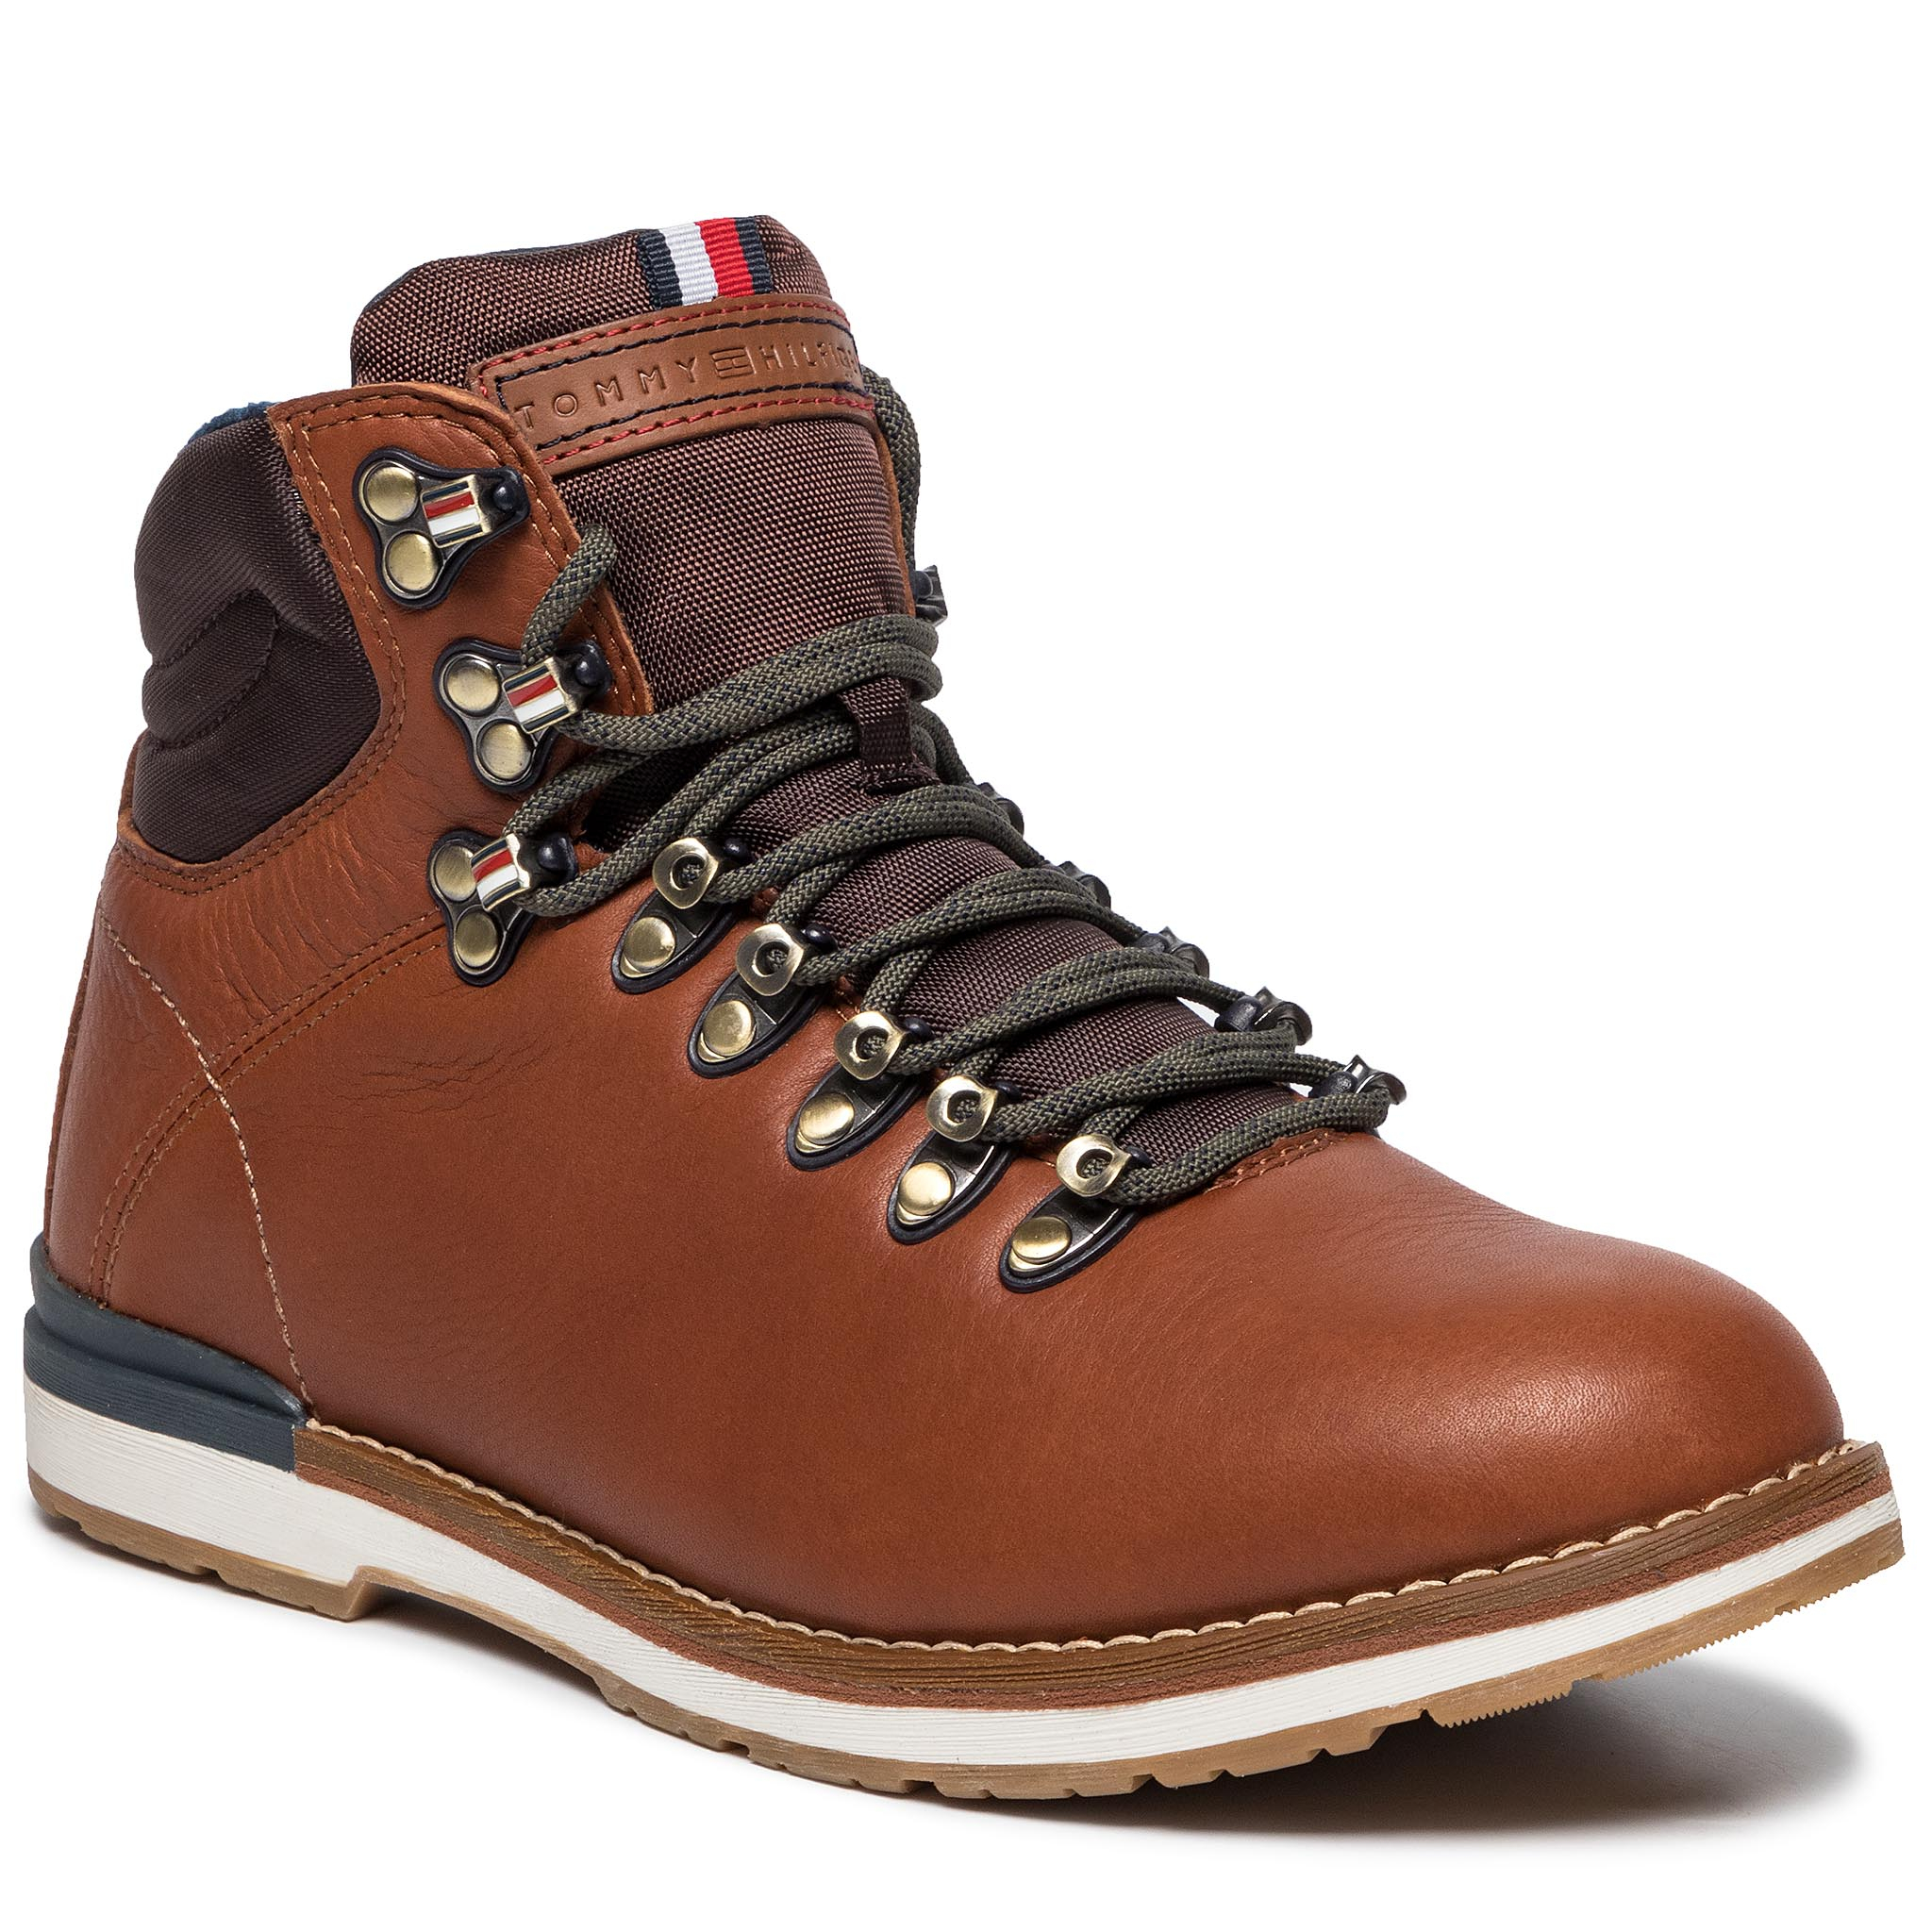 Trappers TOMMY HILFIGER - Outdoor Hiking Lace Leather Bott FM0FM02416 Brandy 601